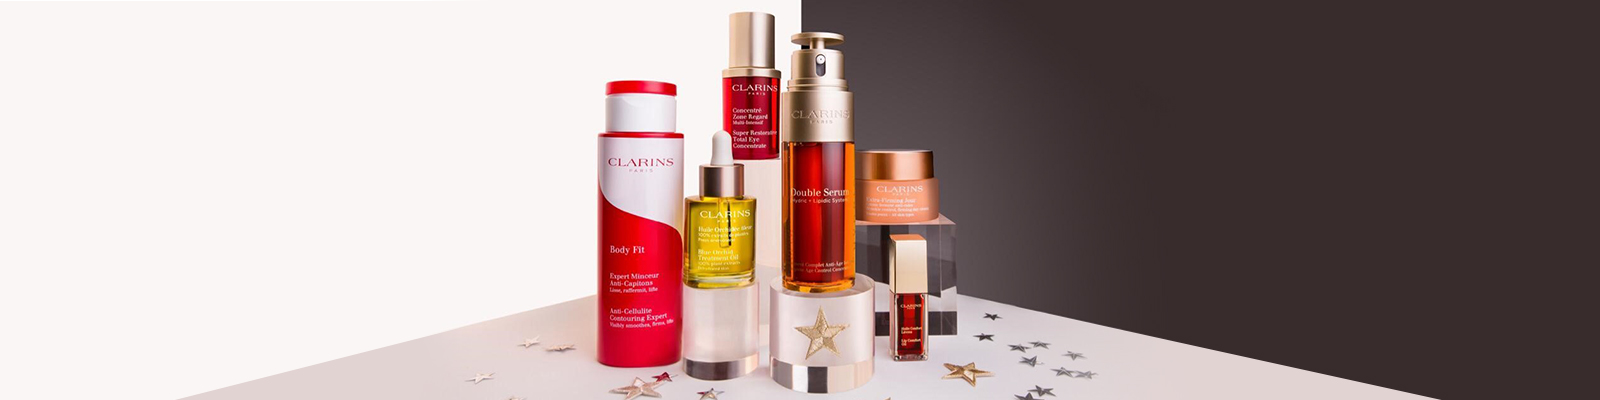 Friends & Family. Get glowing with up to 25% OFF our Clarins all-stars.